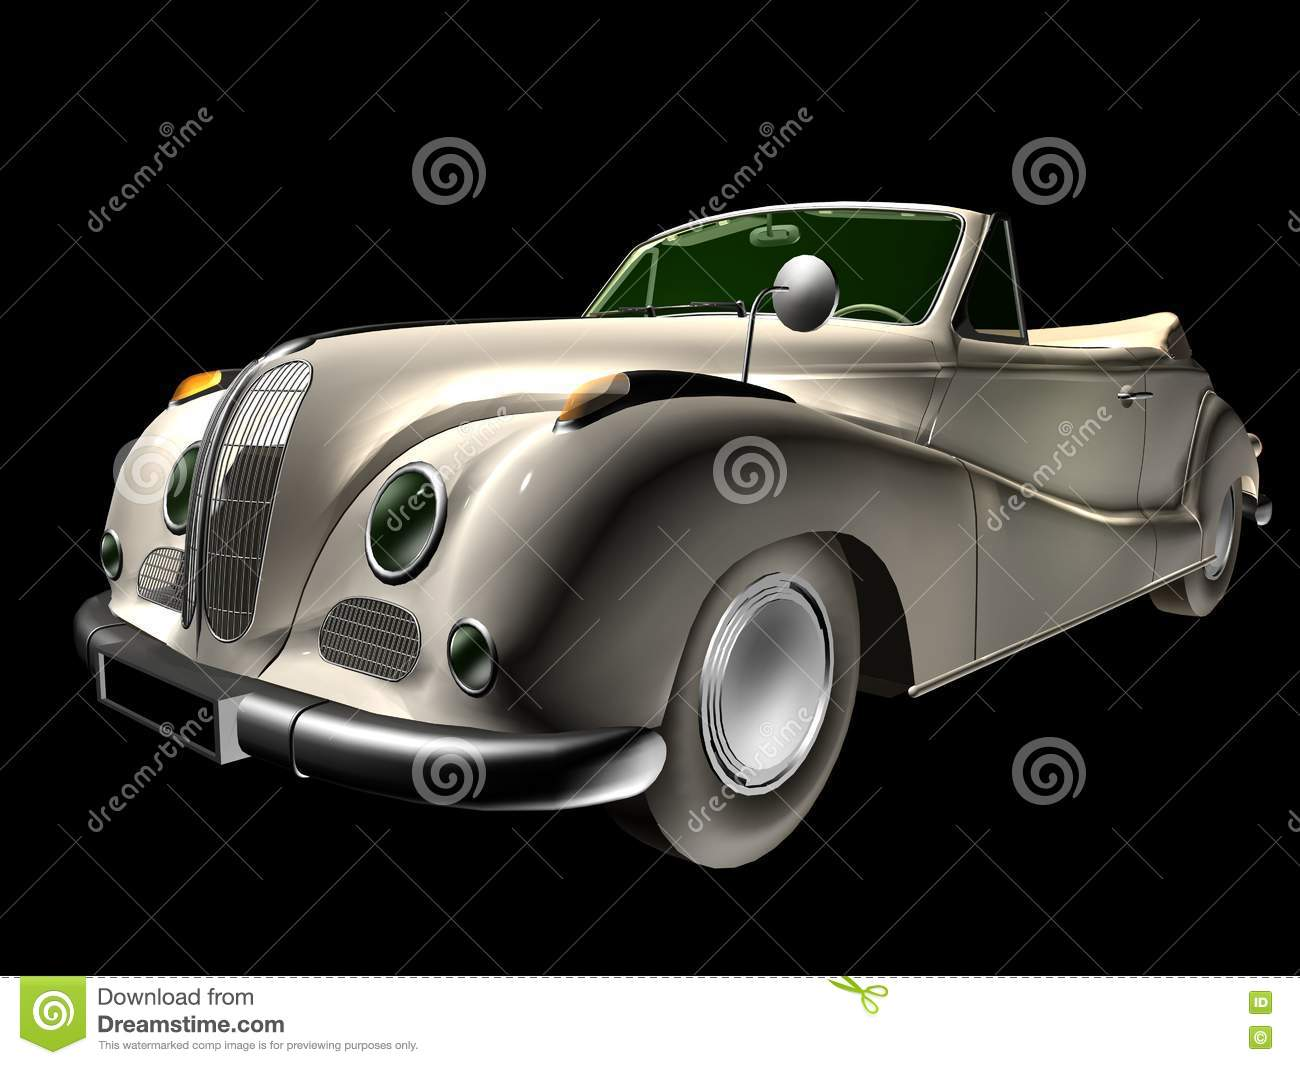 Expensive Car For Sale Or Gift Royalty Free Stock Image: Very Expensive Car Stock Images